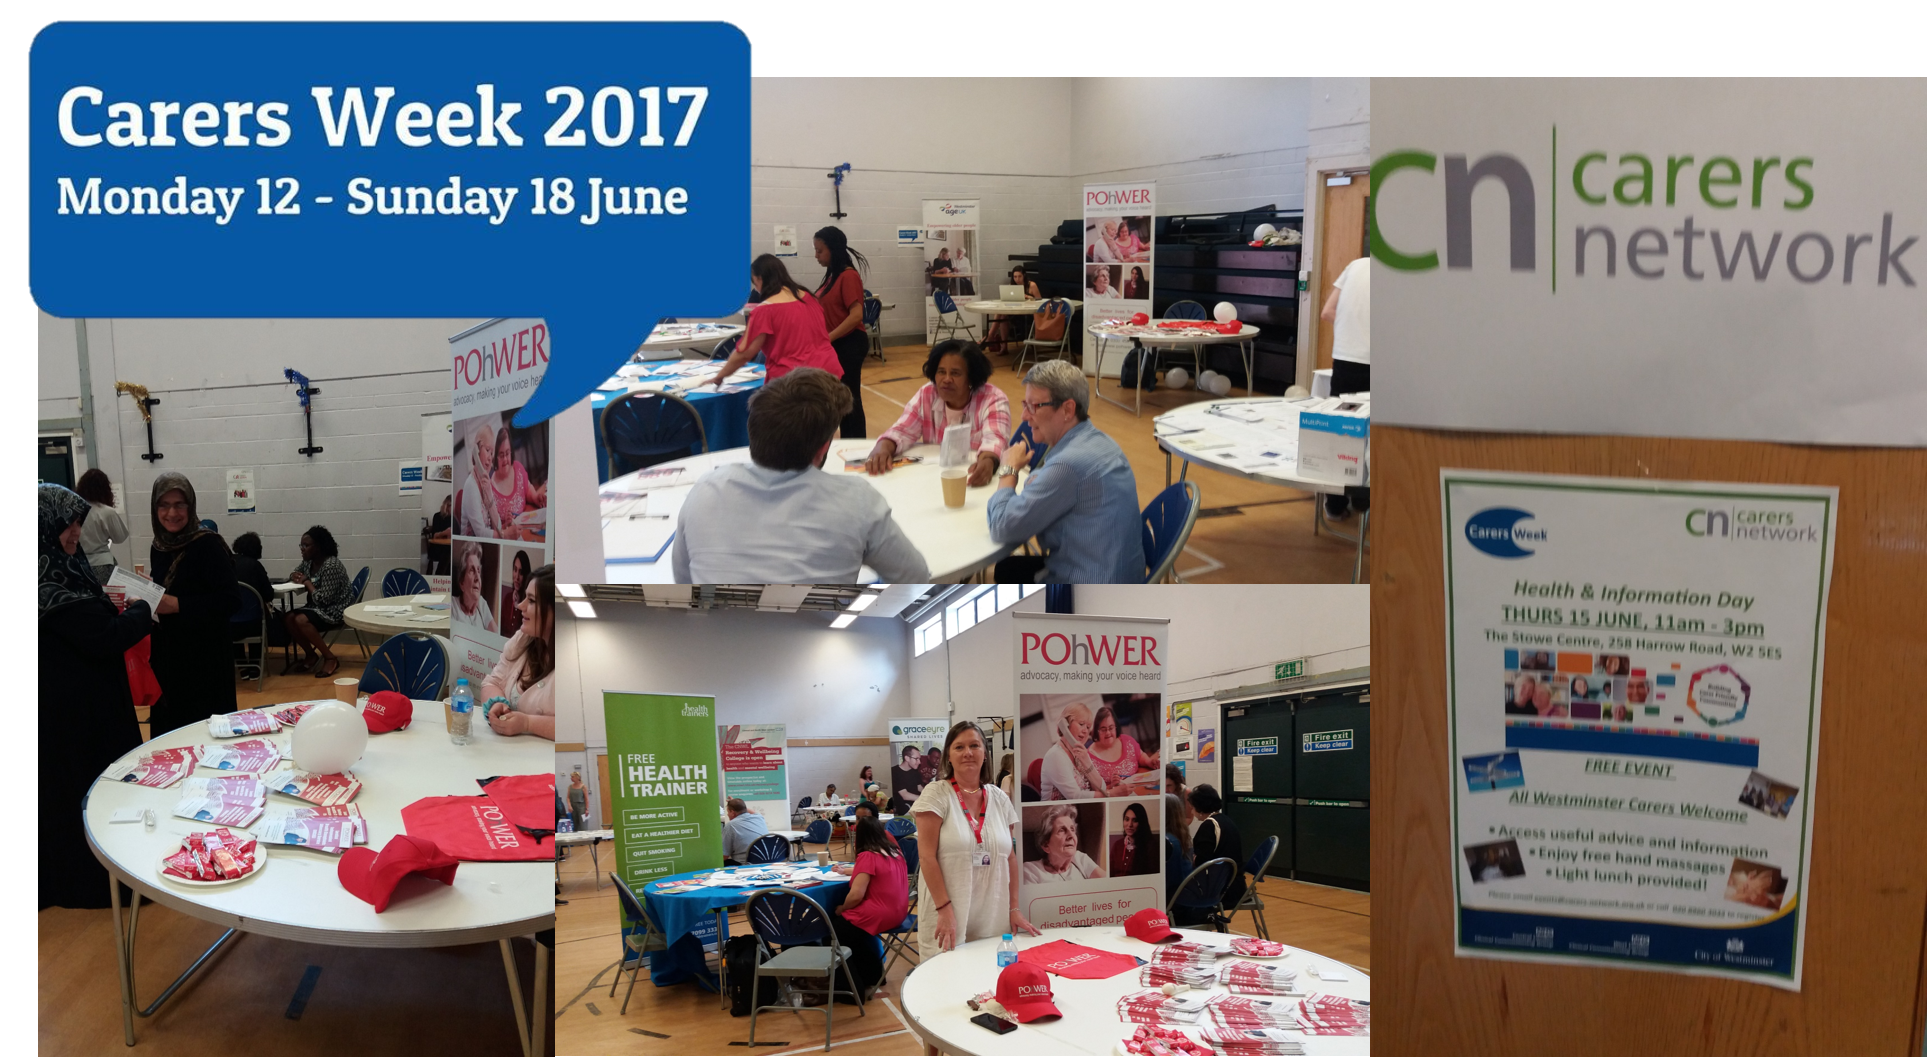 Carers week collage - pictures of people at the Westminster carers network event